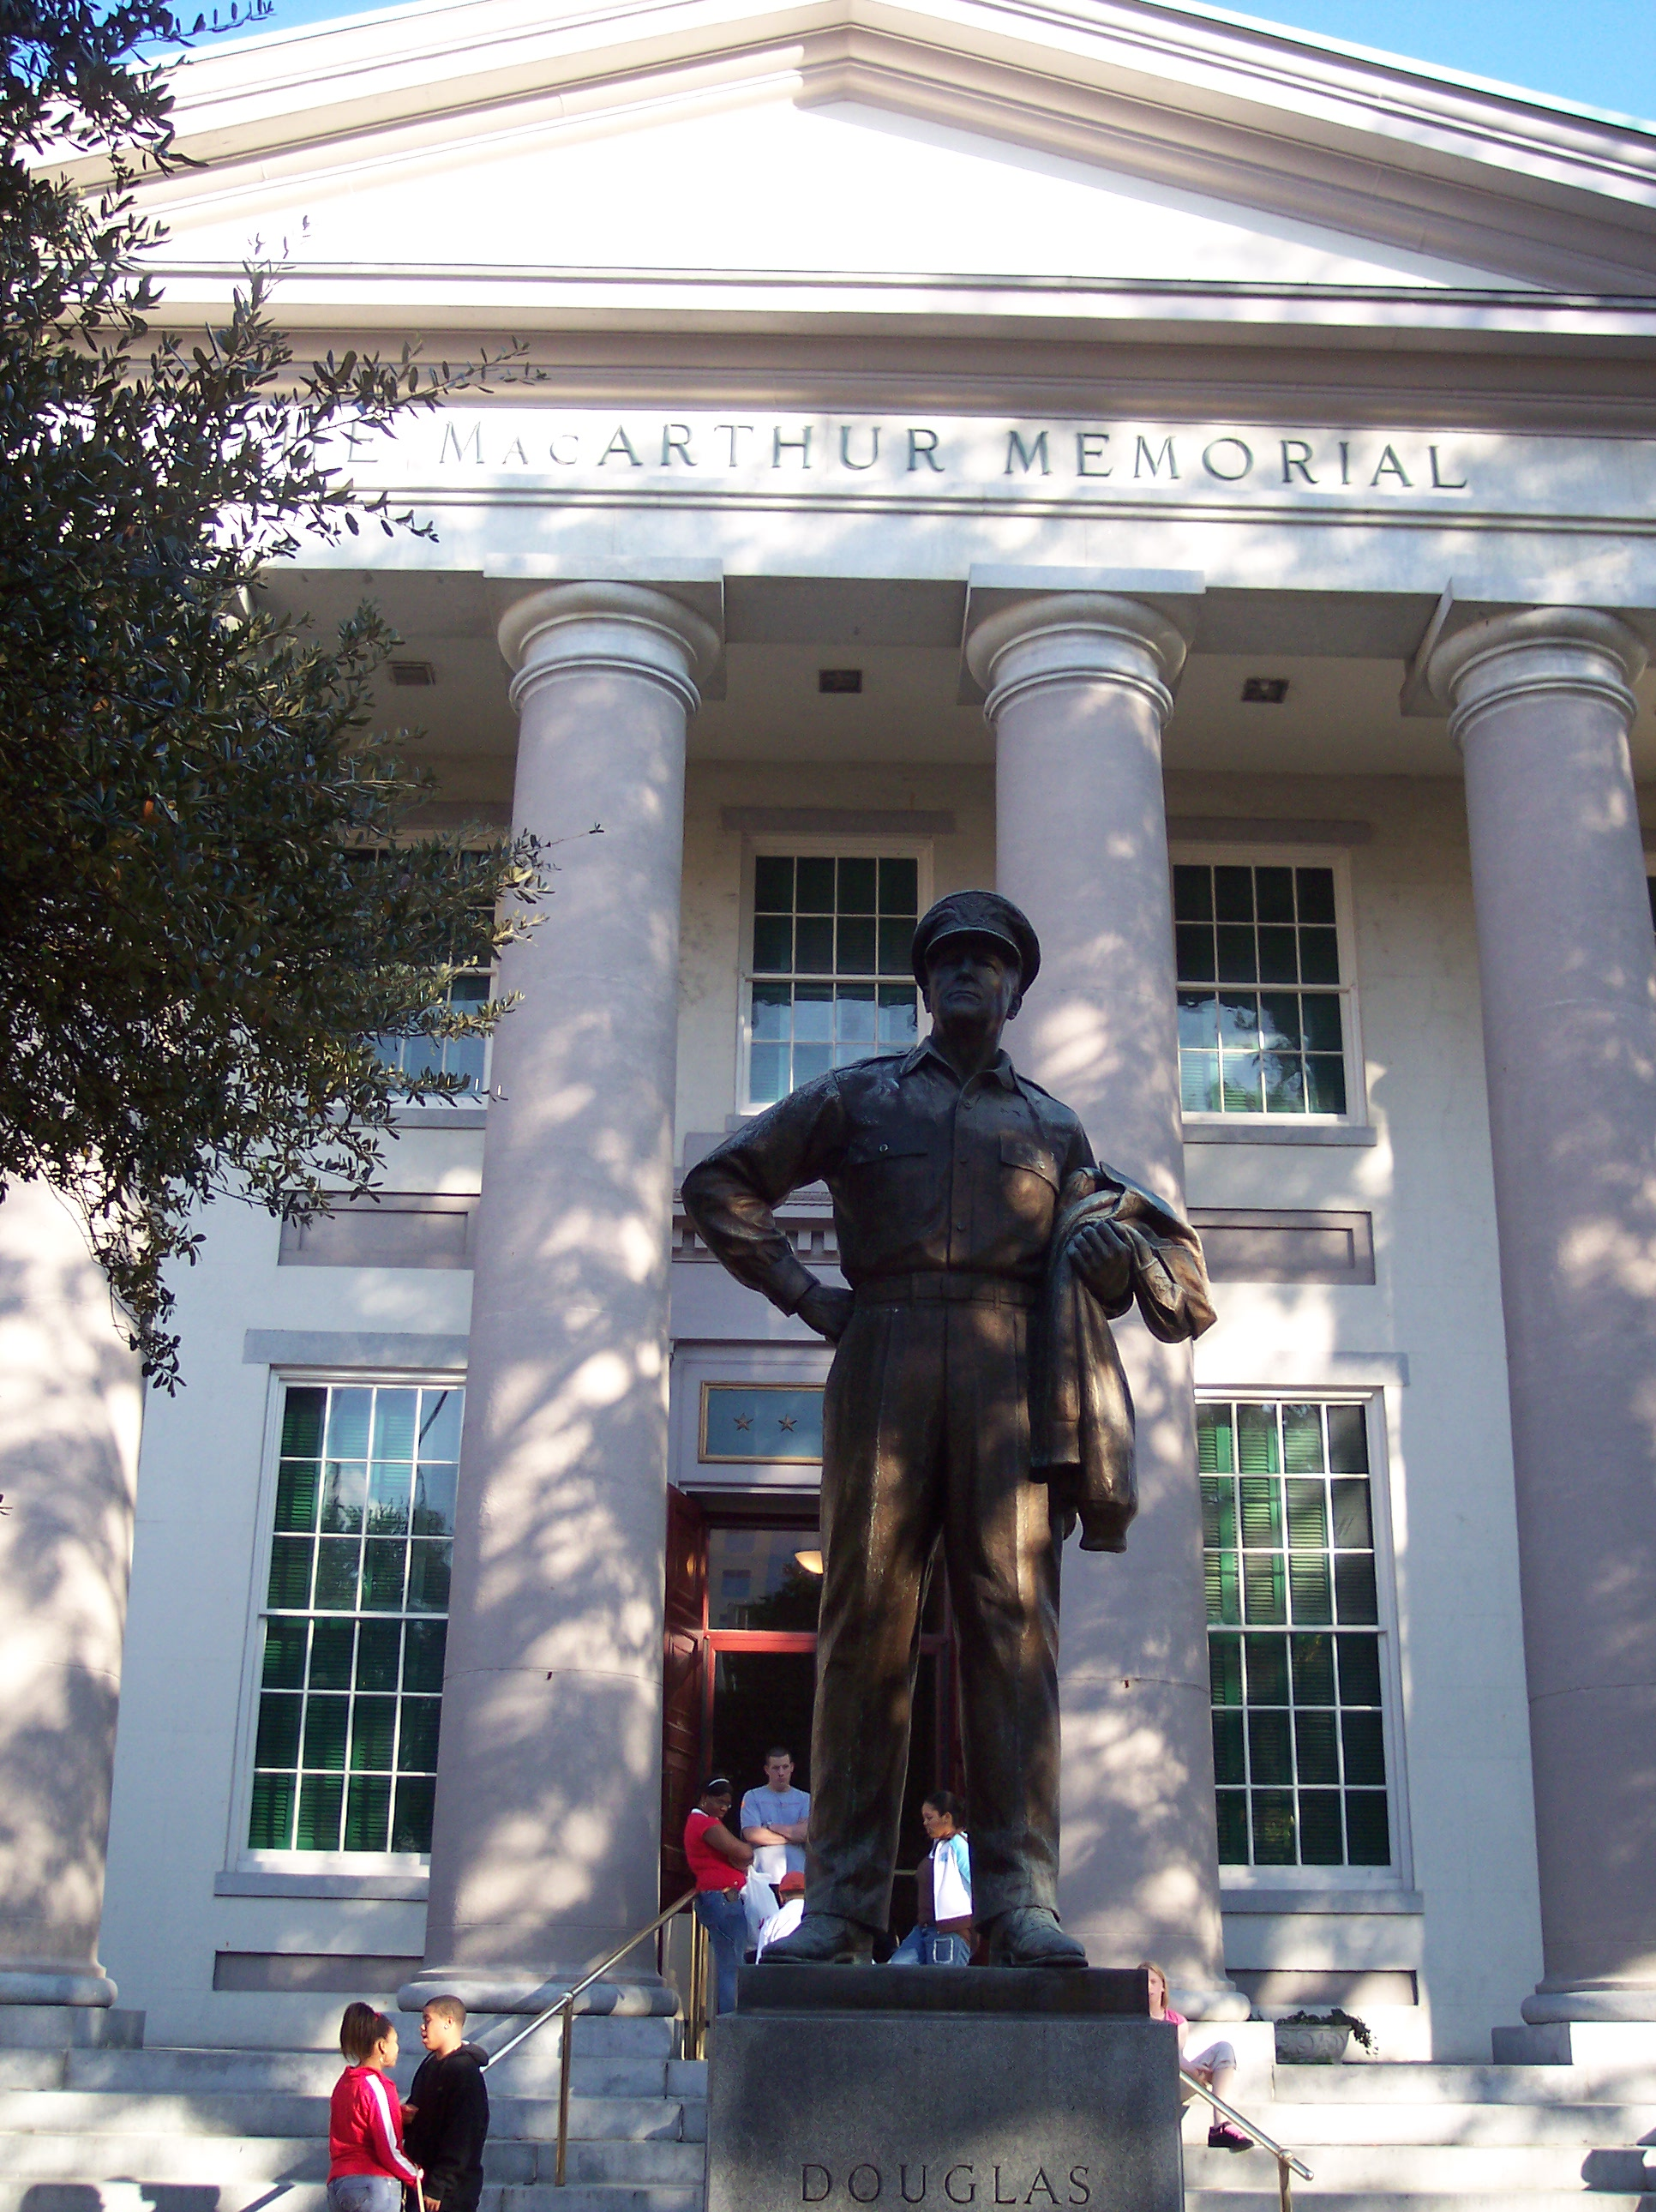 Douglas MacArthur Memorial in Norfolk, Virginia. The statue is a duplicate of the one at West Point. The base houses a time capsule which contains various MacArthur, Norfolk and MacArthur Foundation memorabilia. Photo taken on November 2, 2005.